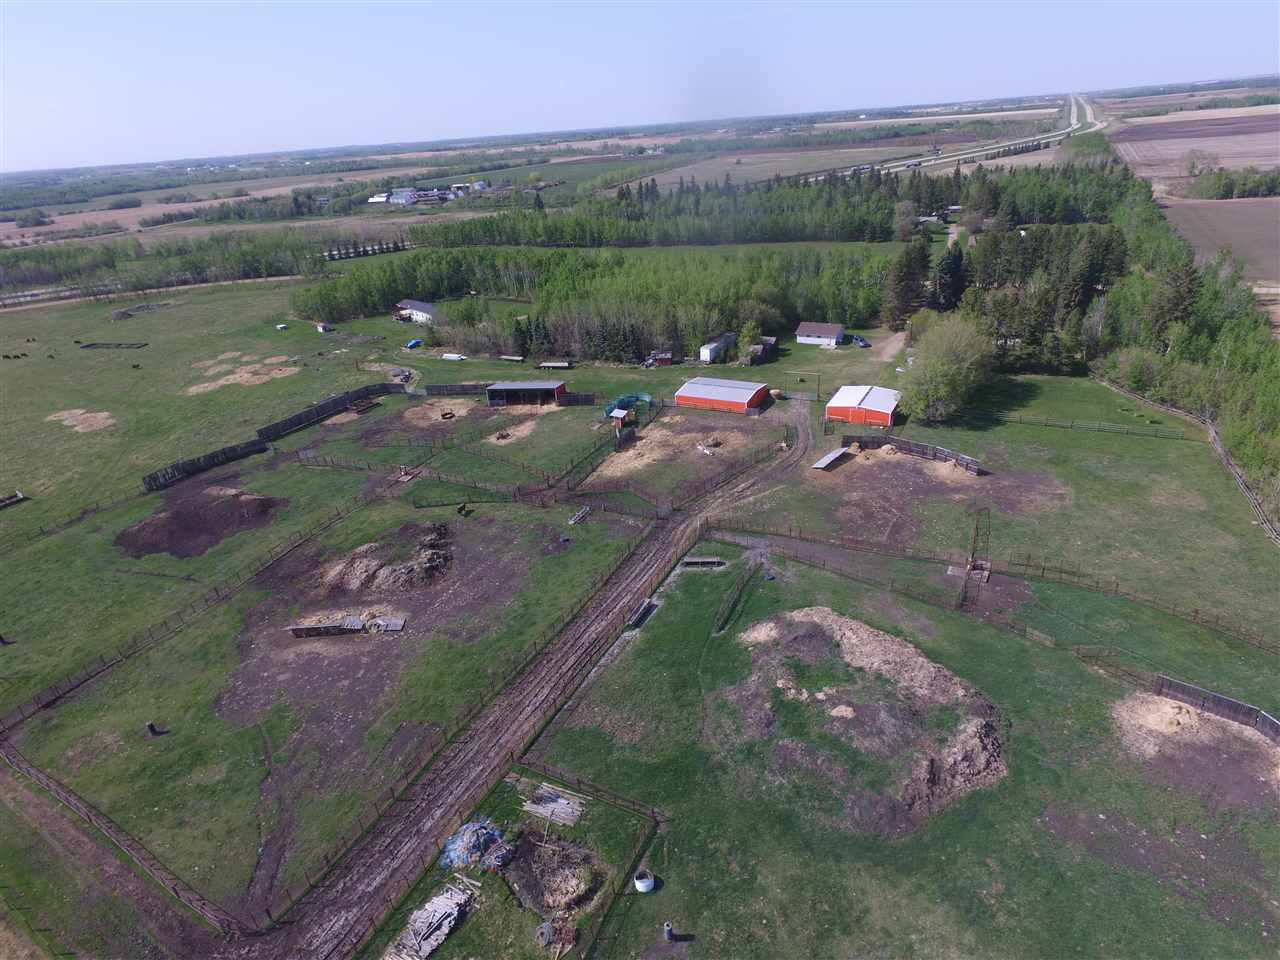 Main Photo: 253045 Twp Rd 472: Rural Wetaskiwin County House for sale : MLS®# E4156097